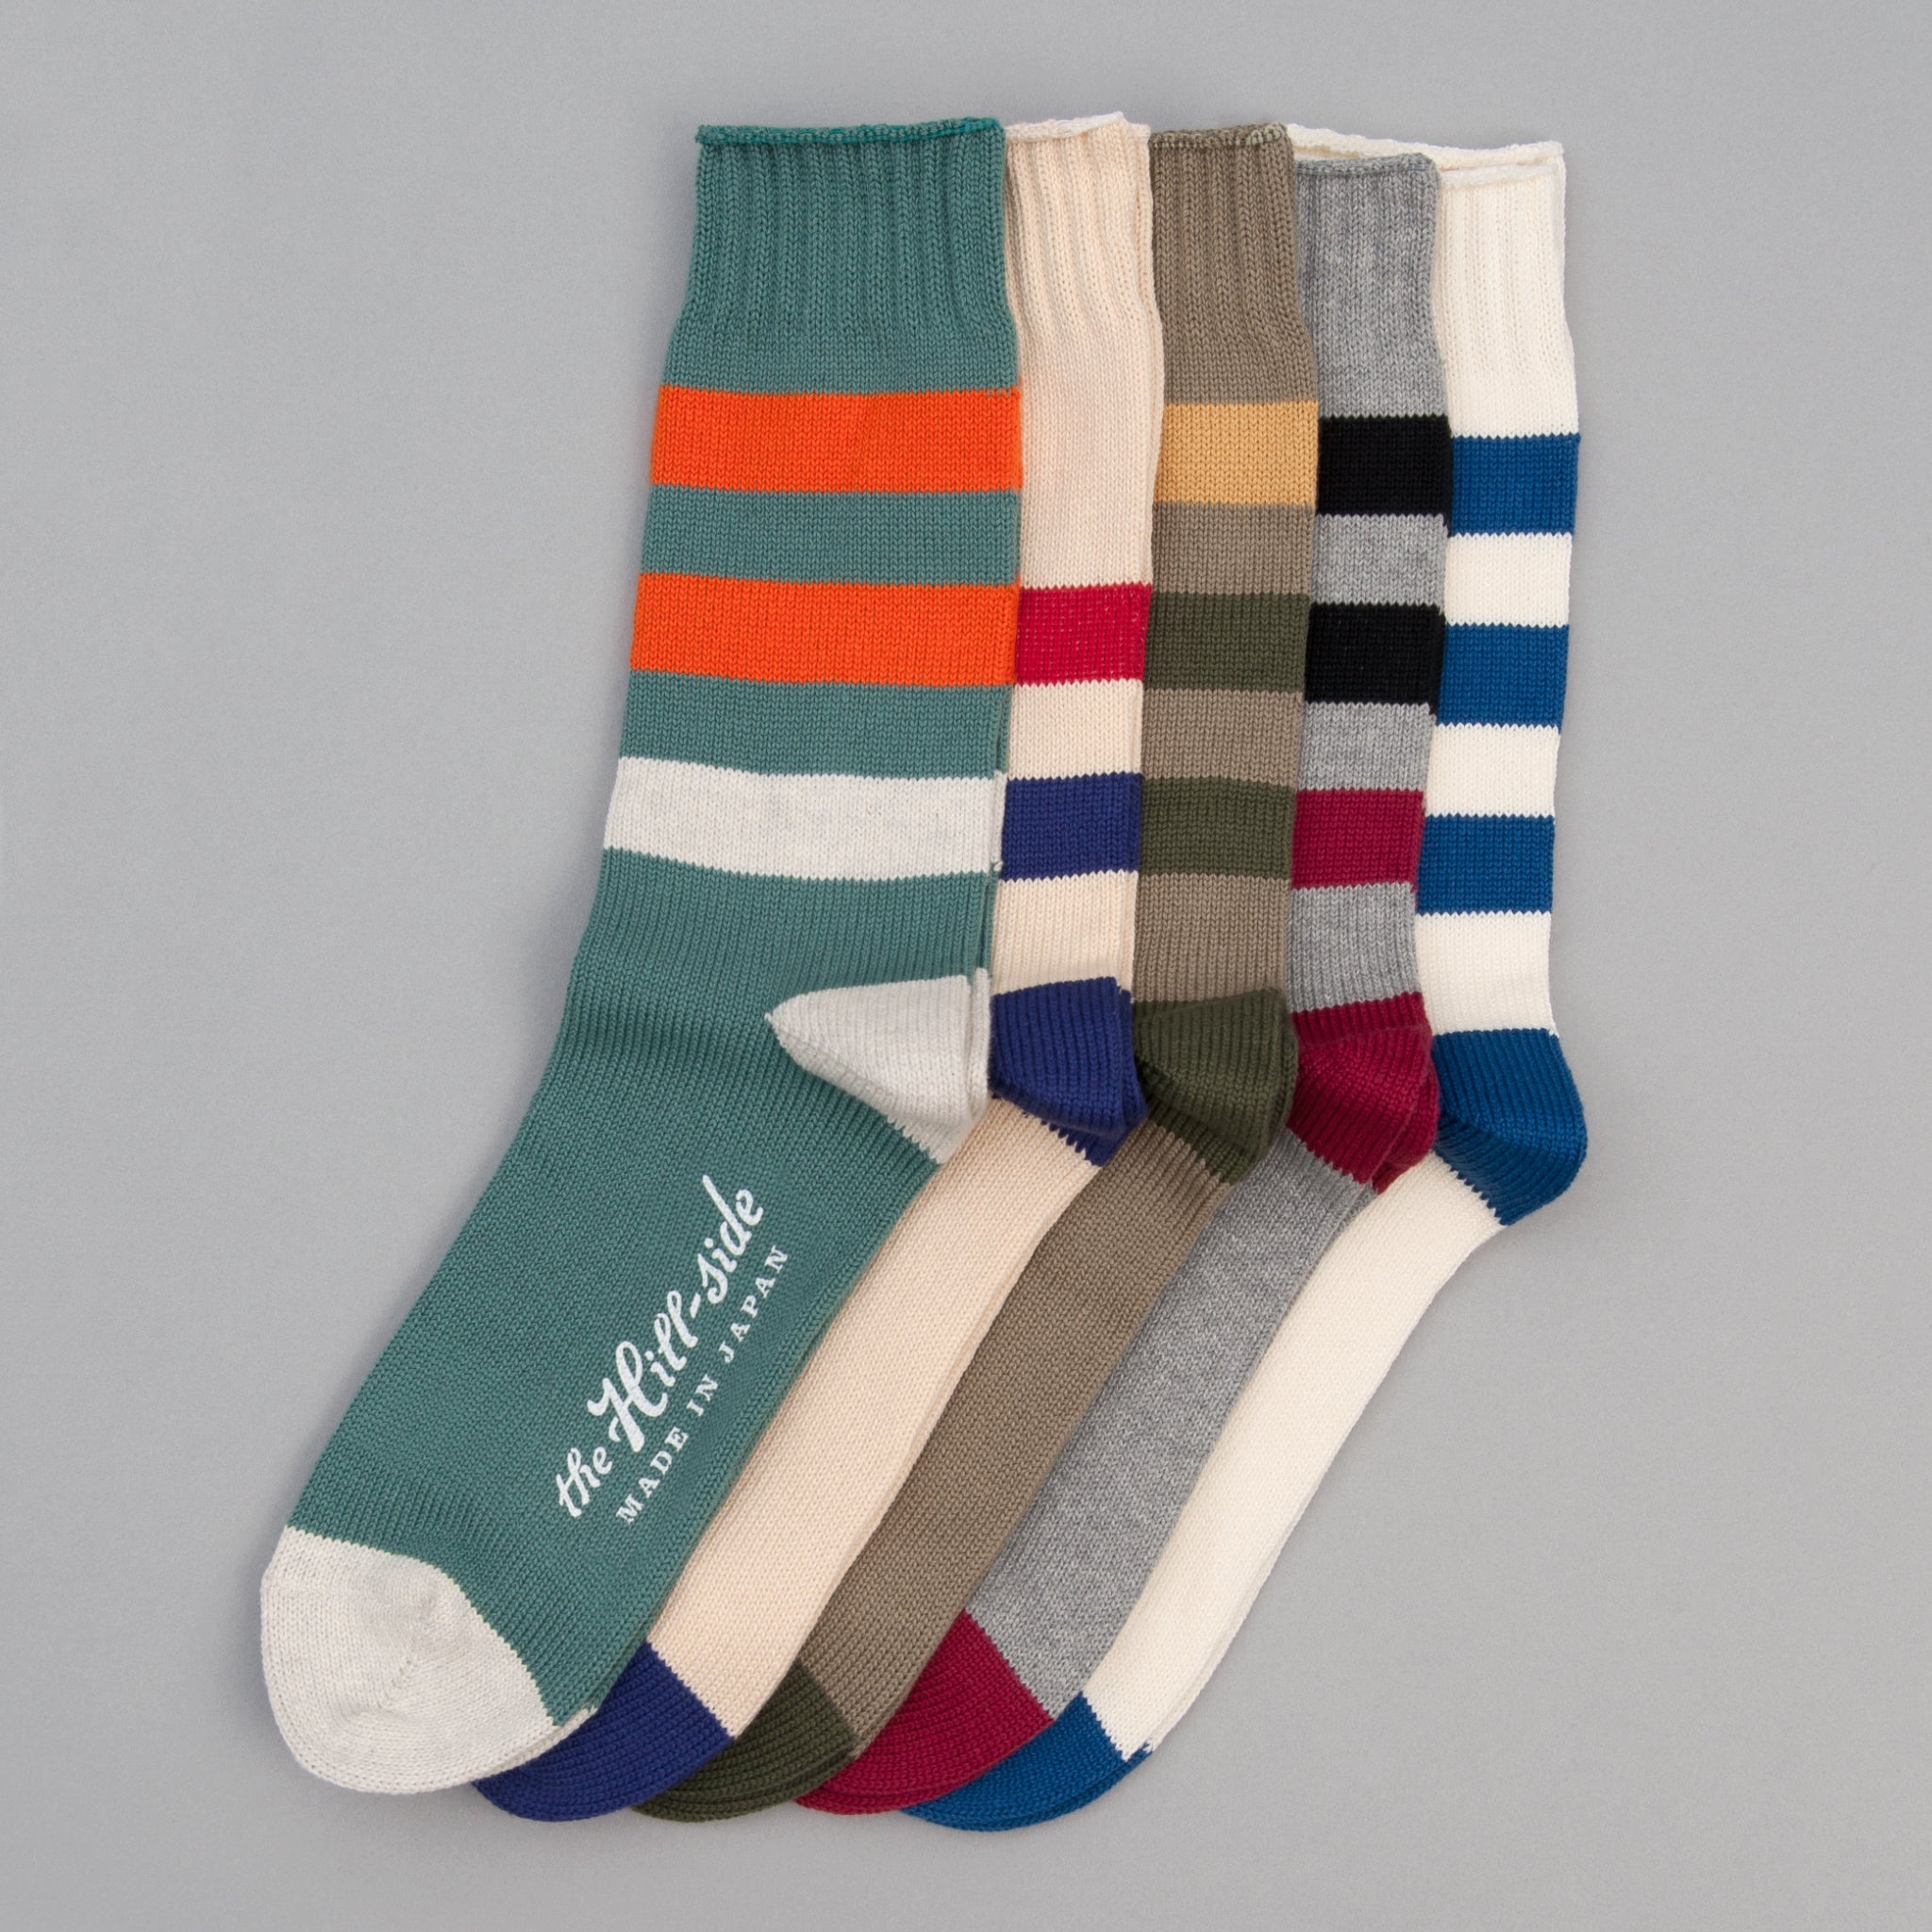 The Hill-Side 5-Pack, Tokyo Bus Lines Socks (save $10)